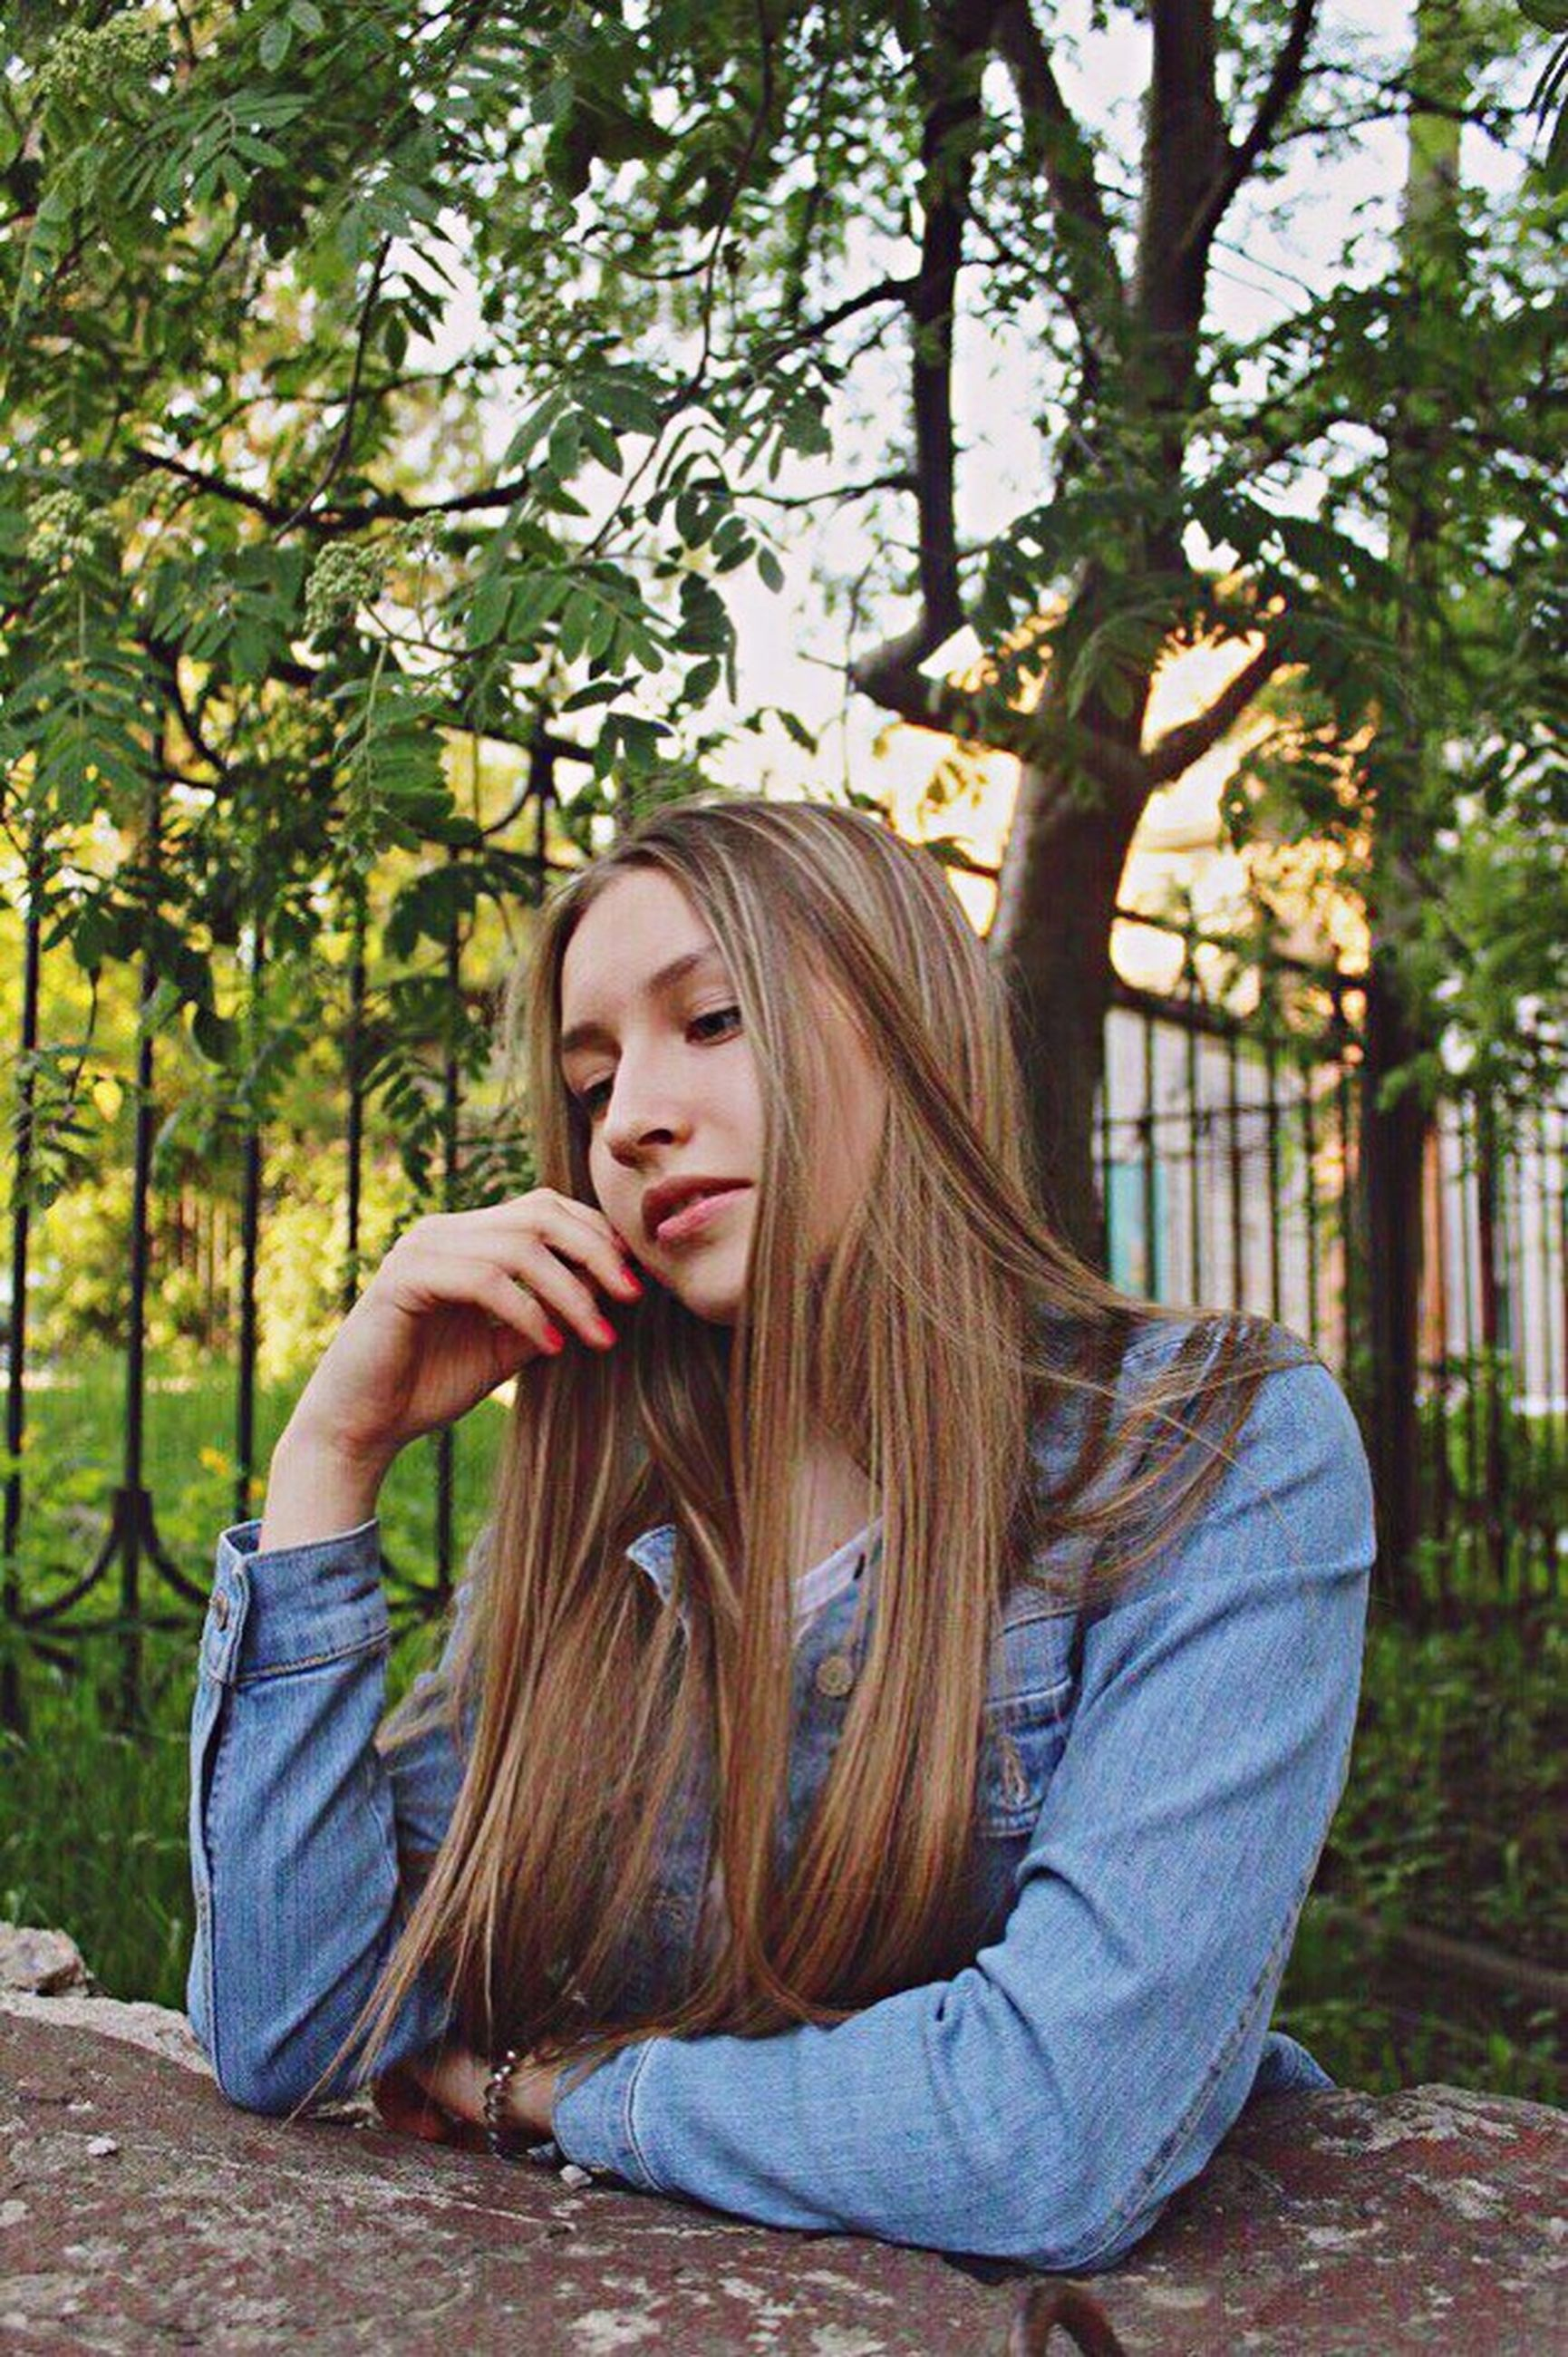 tree, young adult, young women, person, long hair, lifestyles, casual clothing, leisure activity, looking at camera, front view, smiling, portrait, waist up, blond hair, brown hair, day, tree trunk